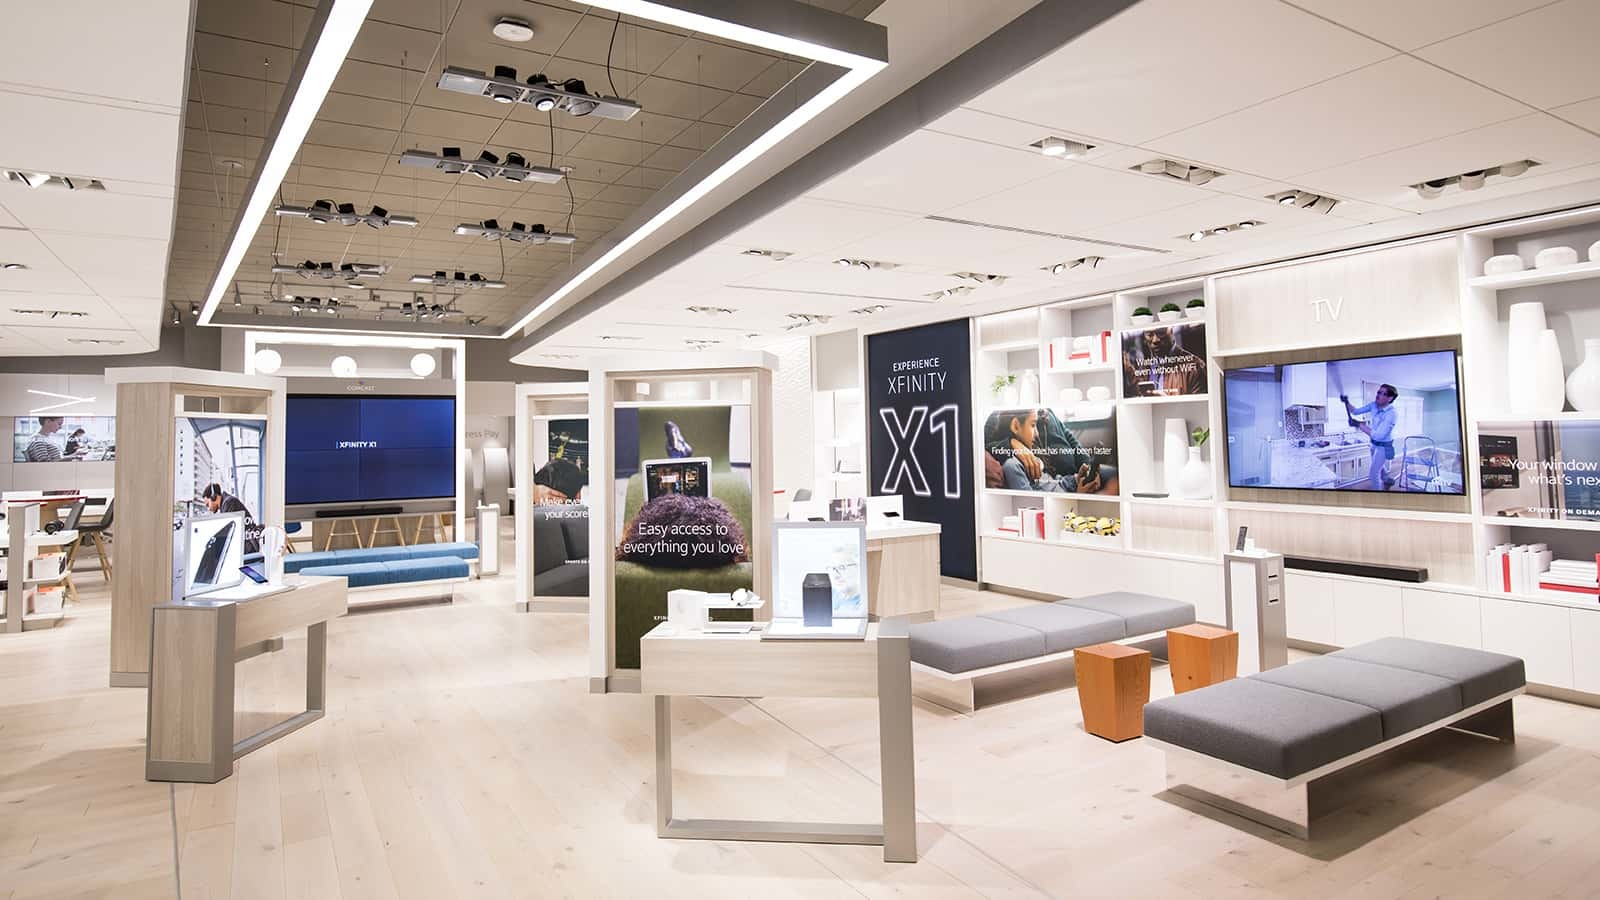 To encourage product exploration, Comcast Xfinity stores are divided into six distinct, yet interconnected, zones.